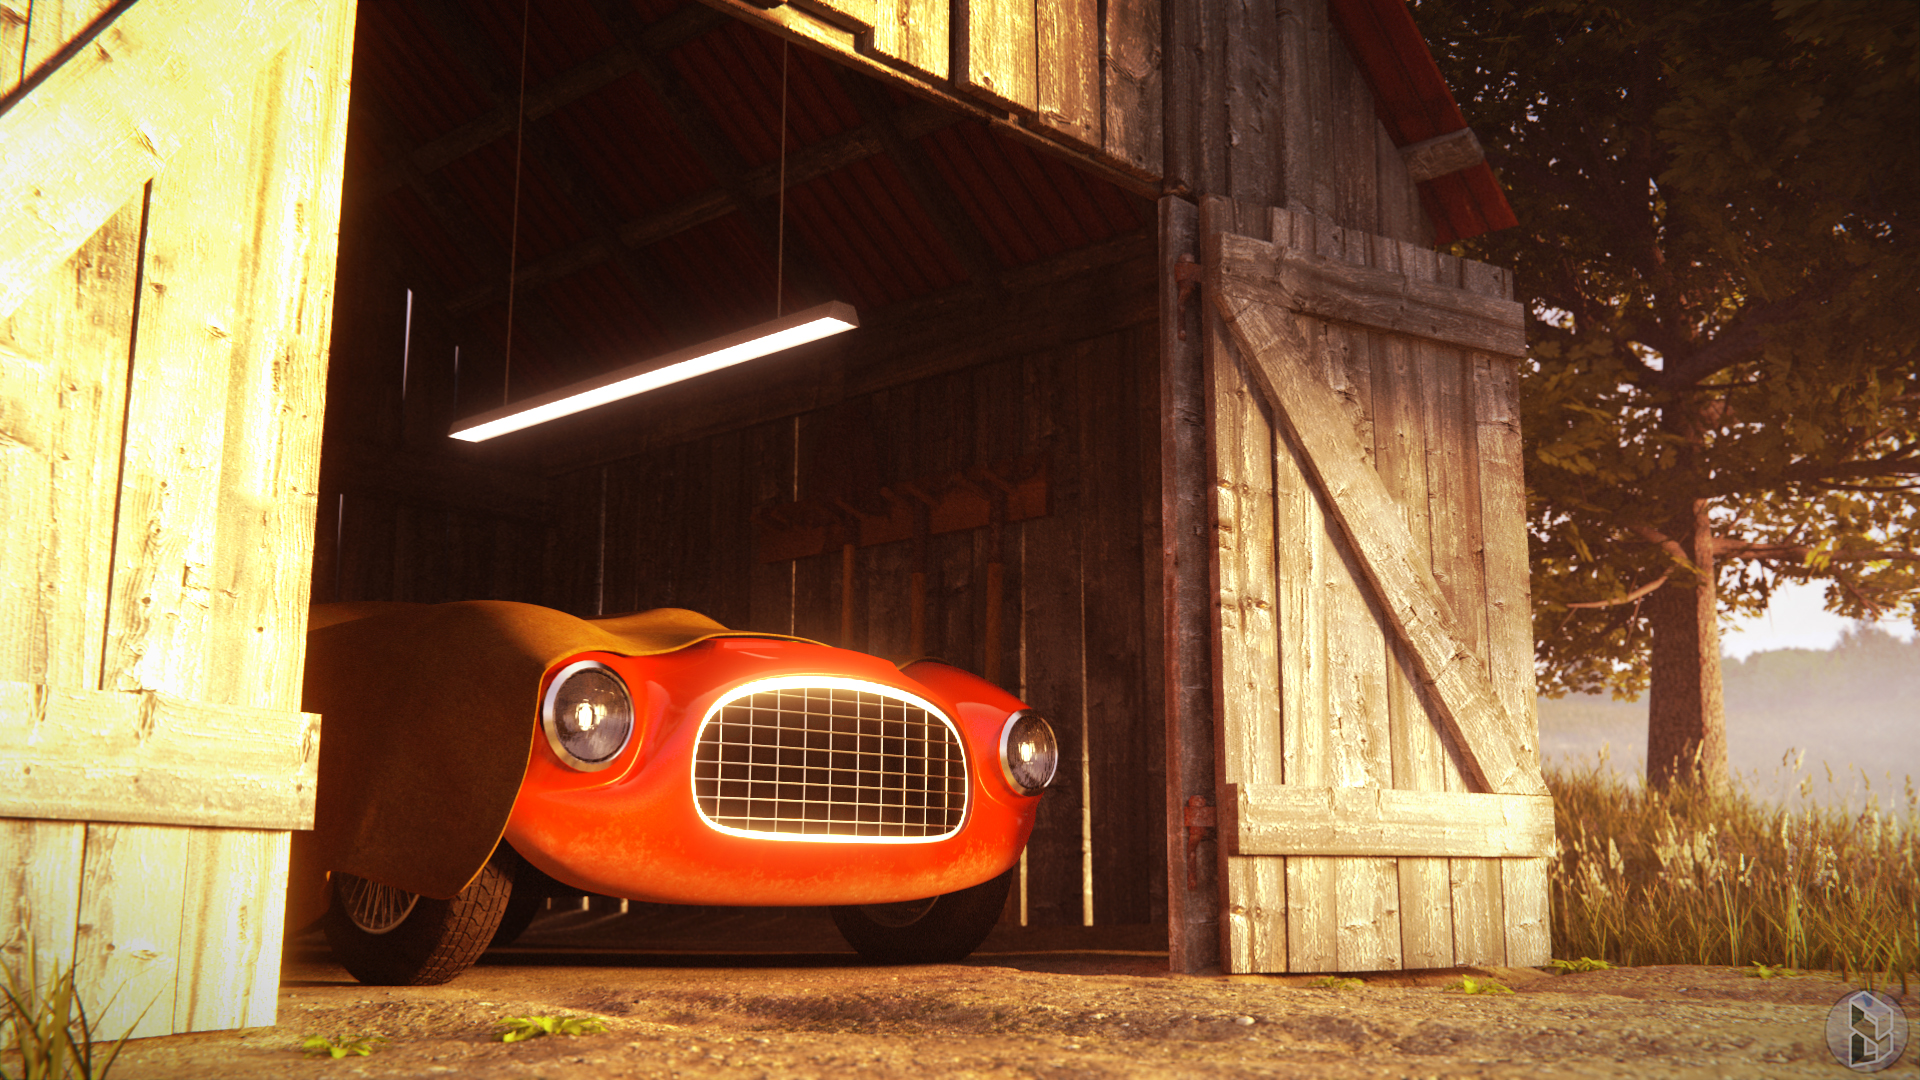 Red Barchetta Finished Projects Blender Artists Community